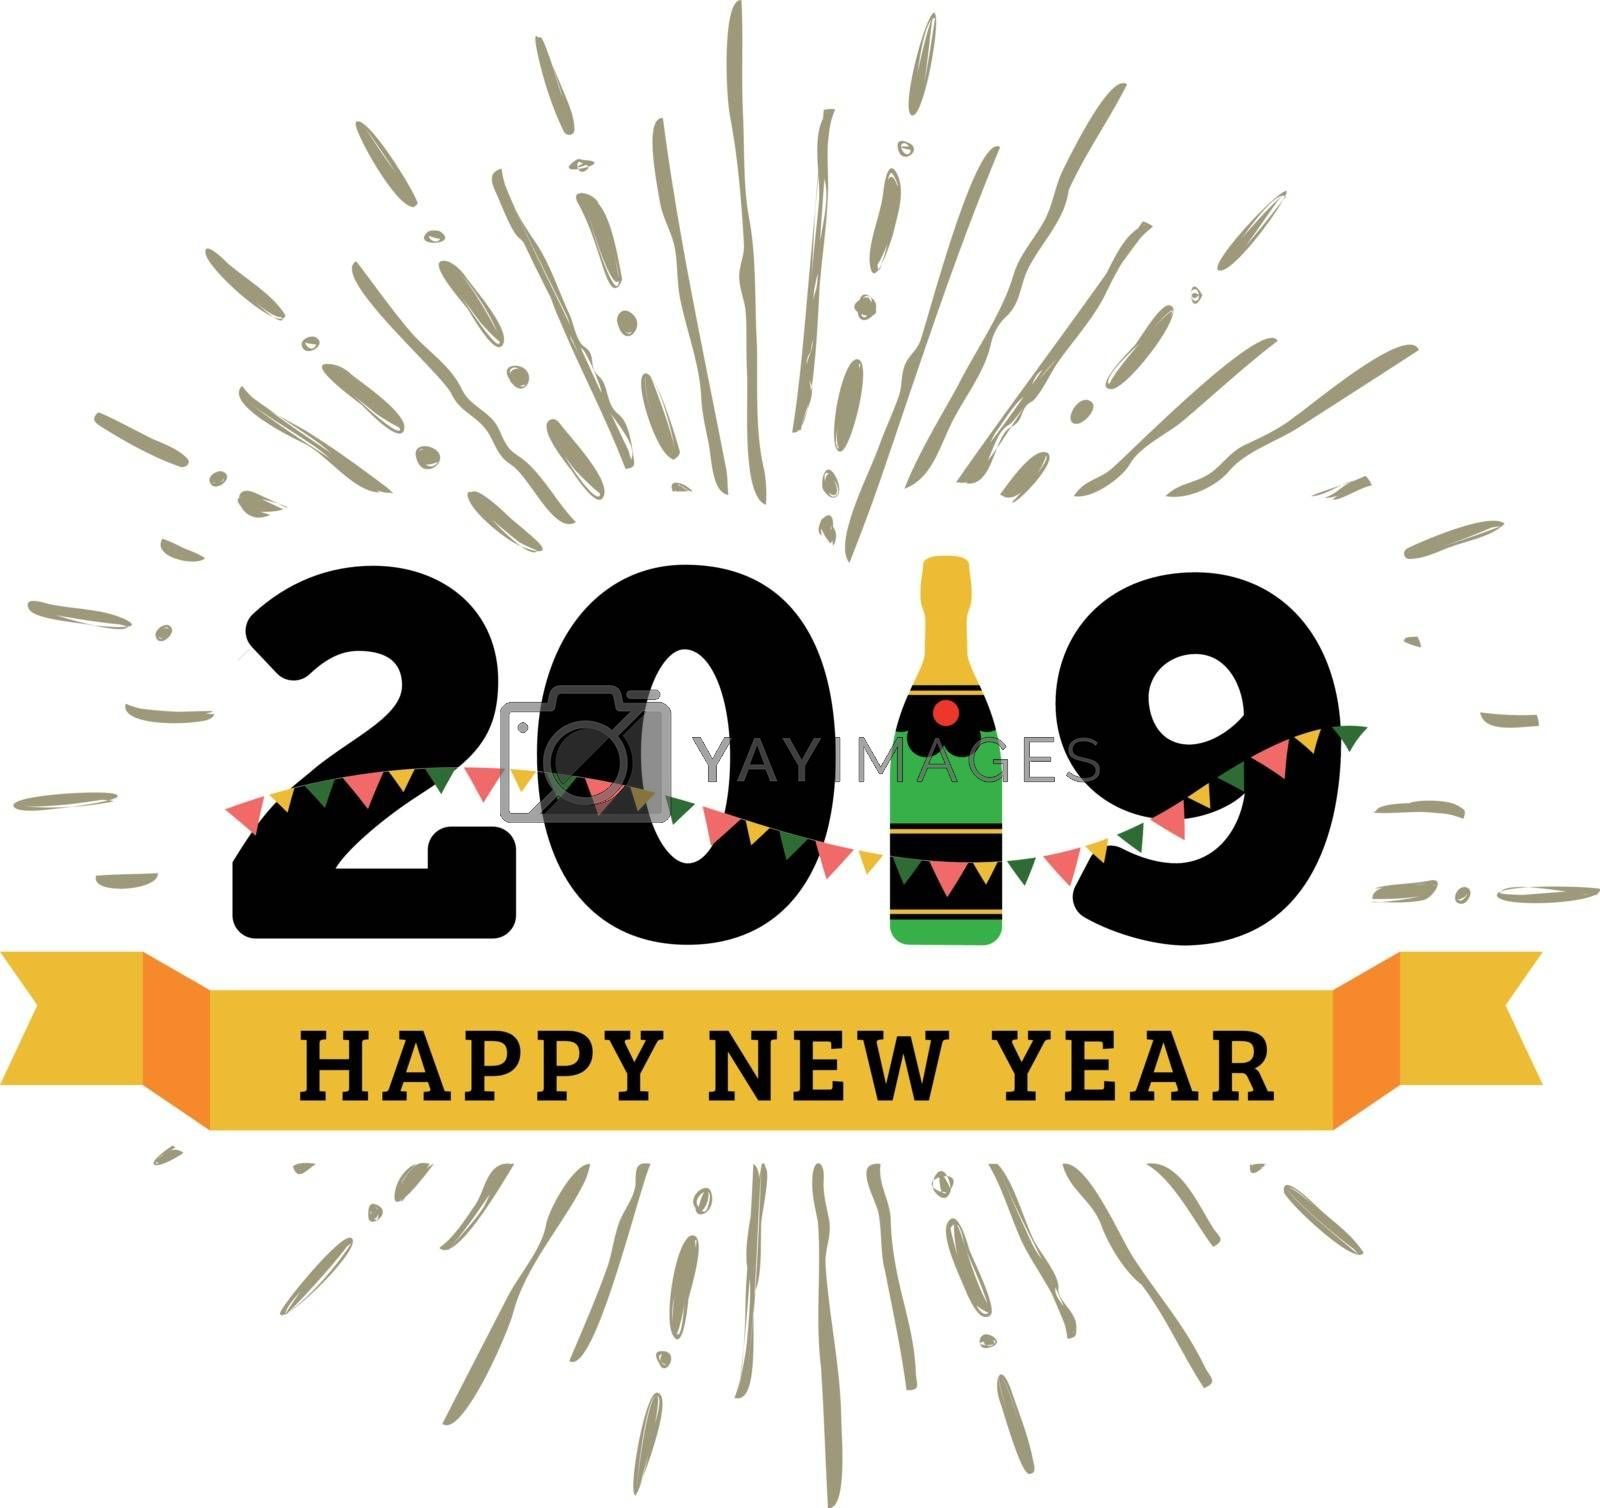 Congratulations to the happy new 2019 year with a bottle of champagne, flags. Vector flat illustration with sunburst